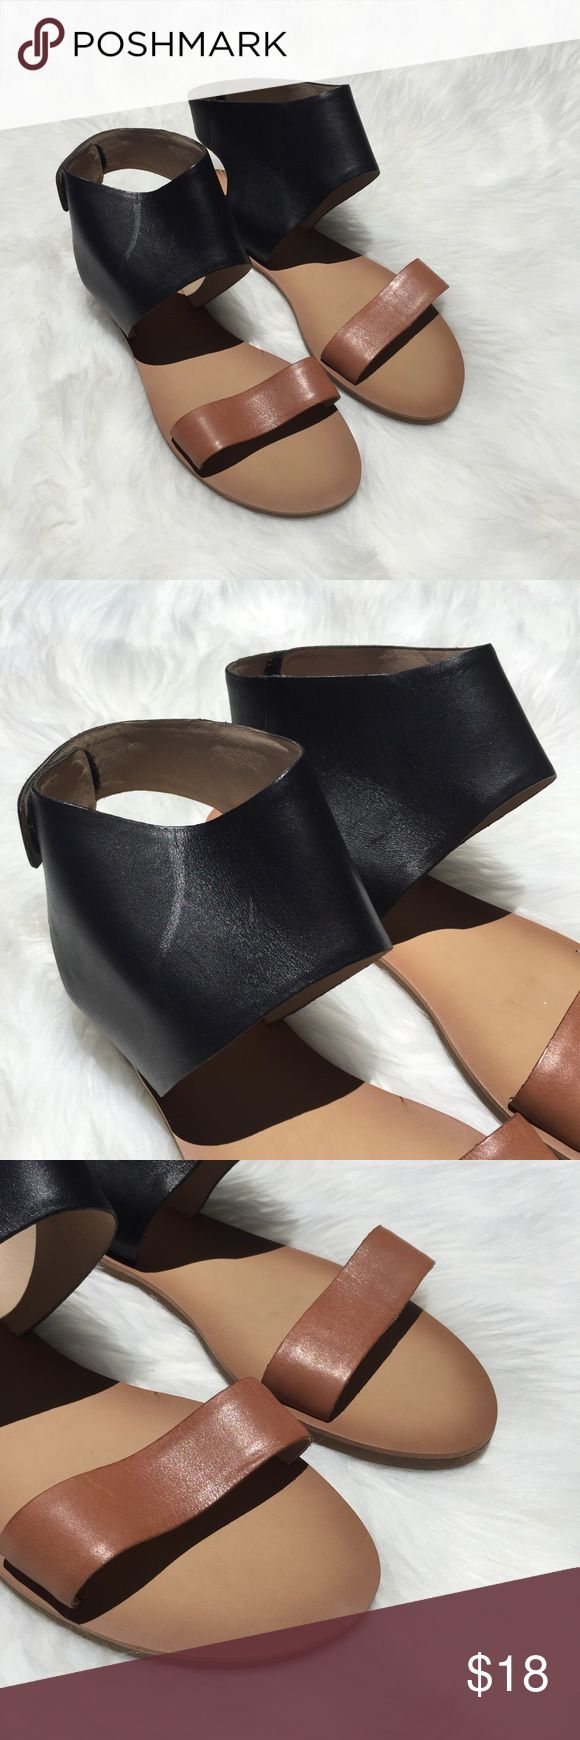 Lucky brand leather open toe ankle strap sandals Size 10 Black ankle strap with beige open toe strap Flat heel New without a box Hook and loop fastener Never been worn sandals. No defects anywhere on the sandals. Lucky Brand Shoes Sandals